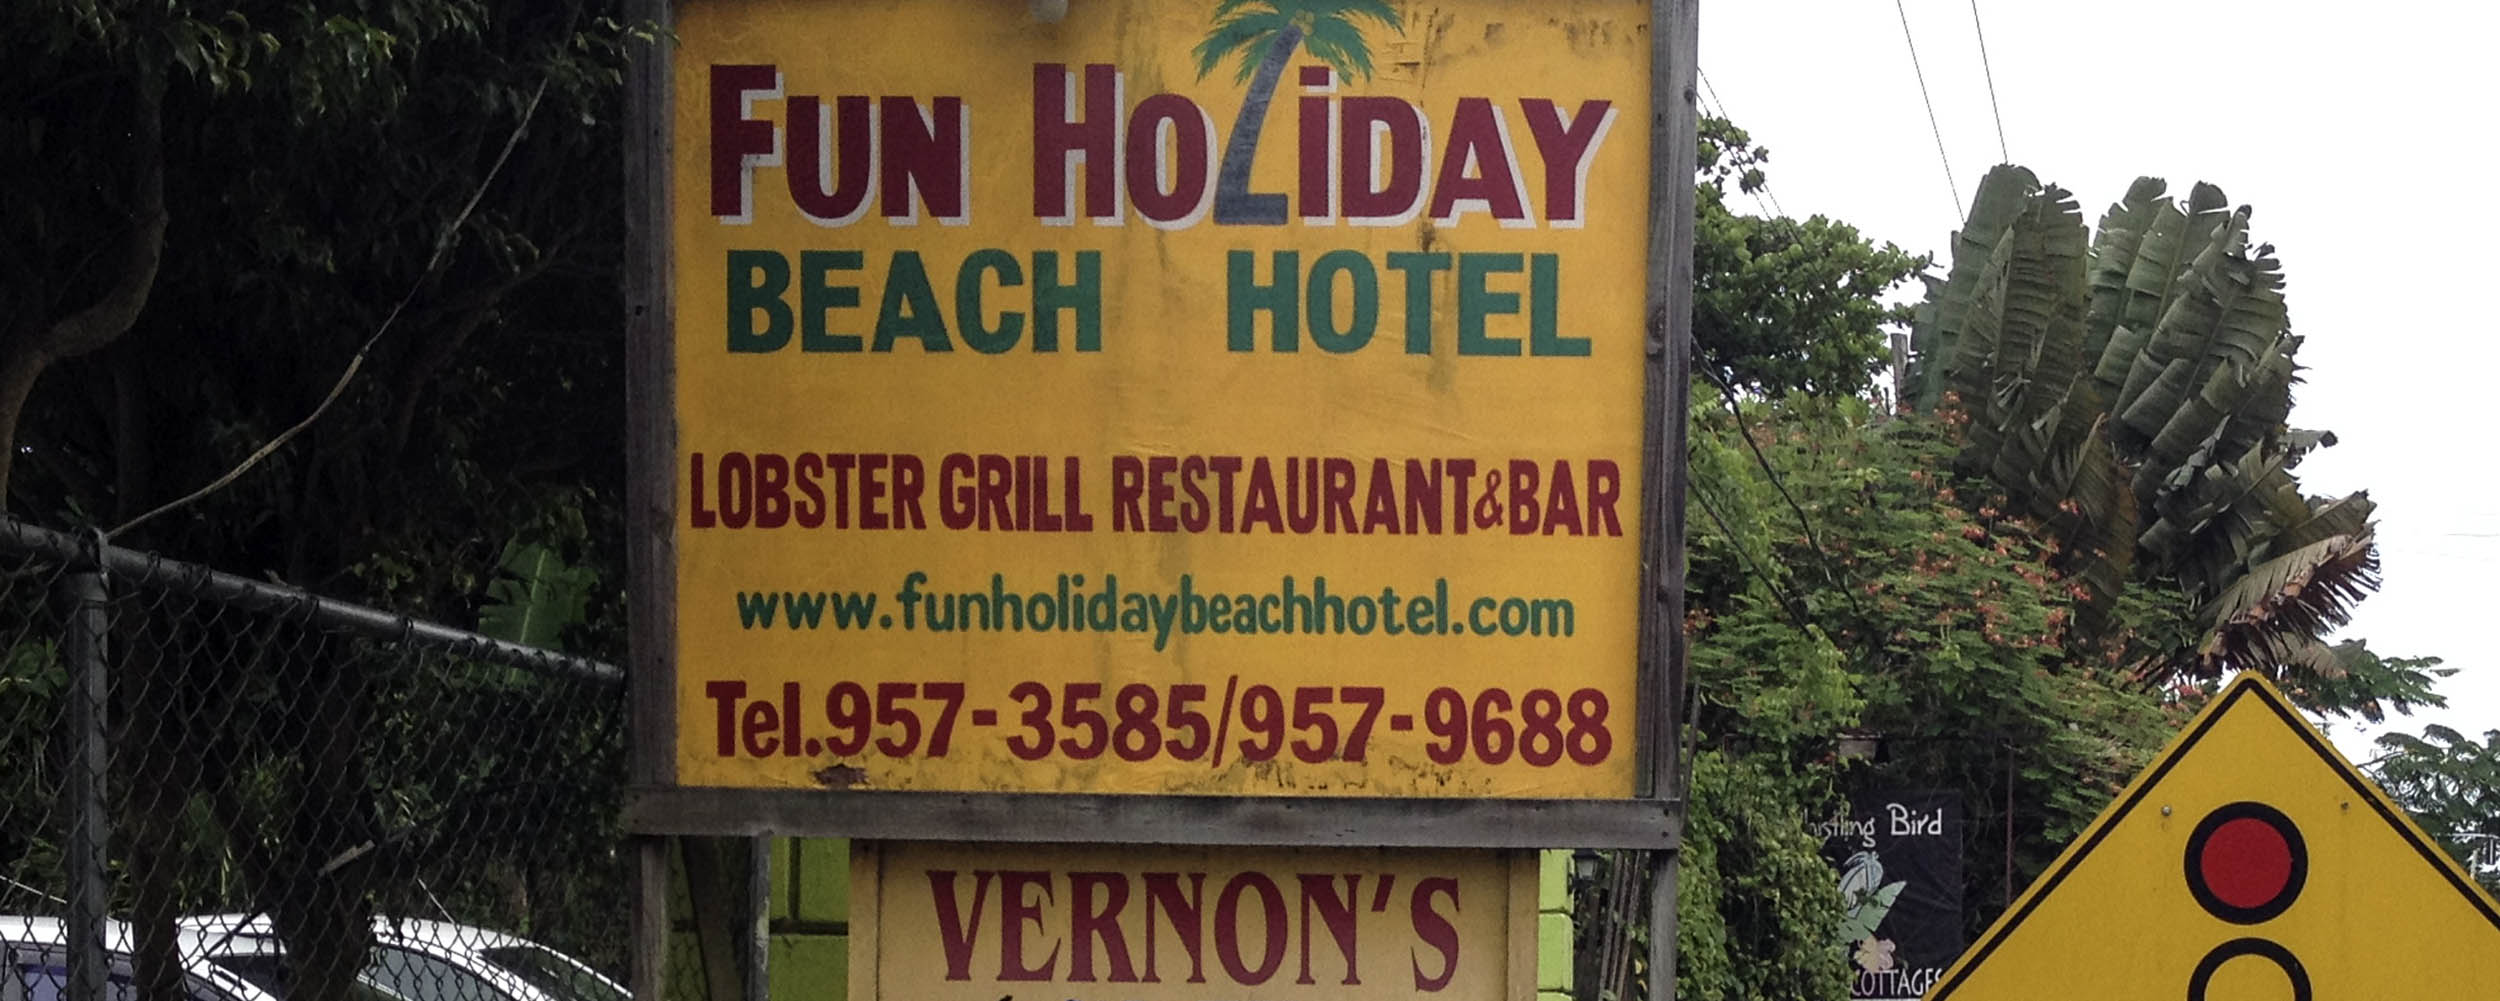 Fun Holiday Beach Hotel - Negril Jamaica